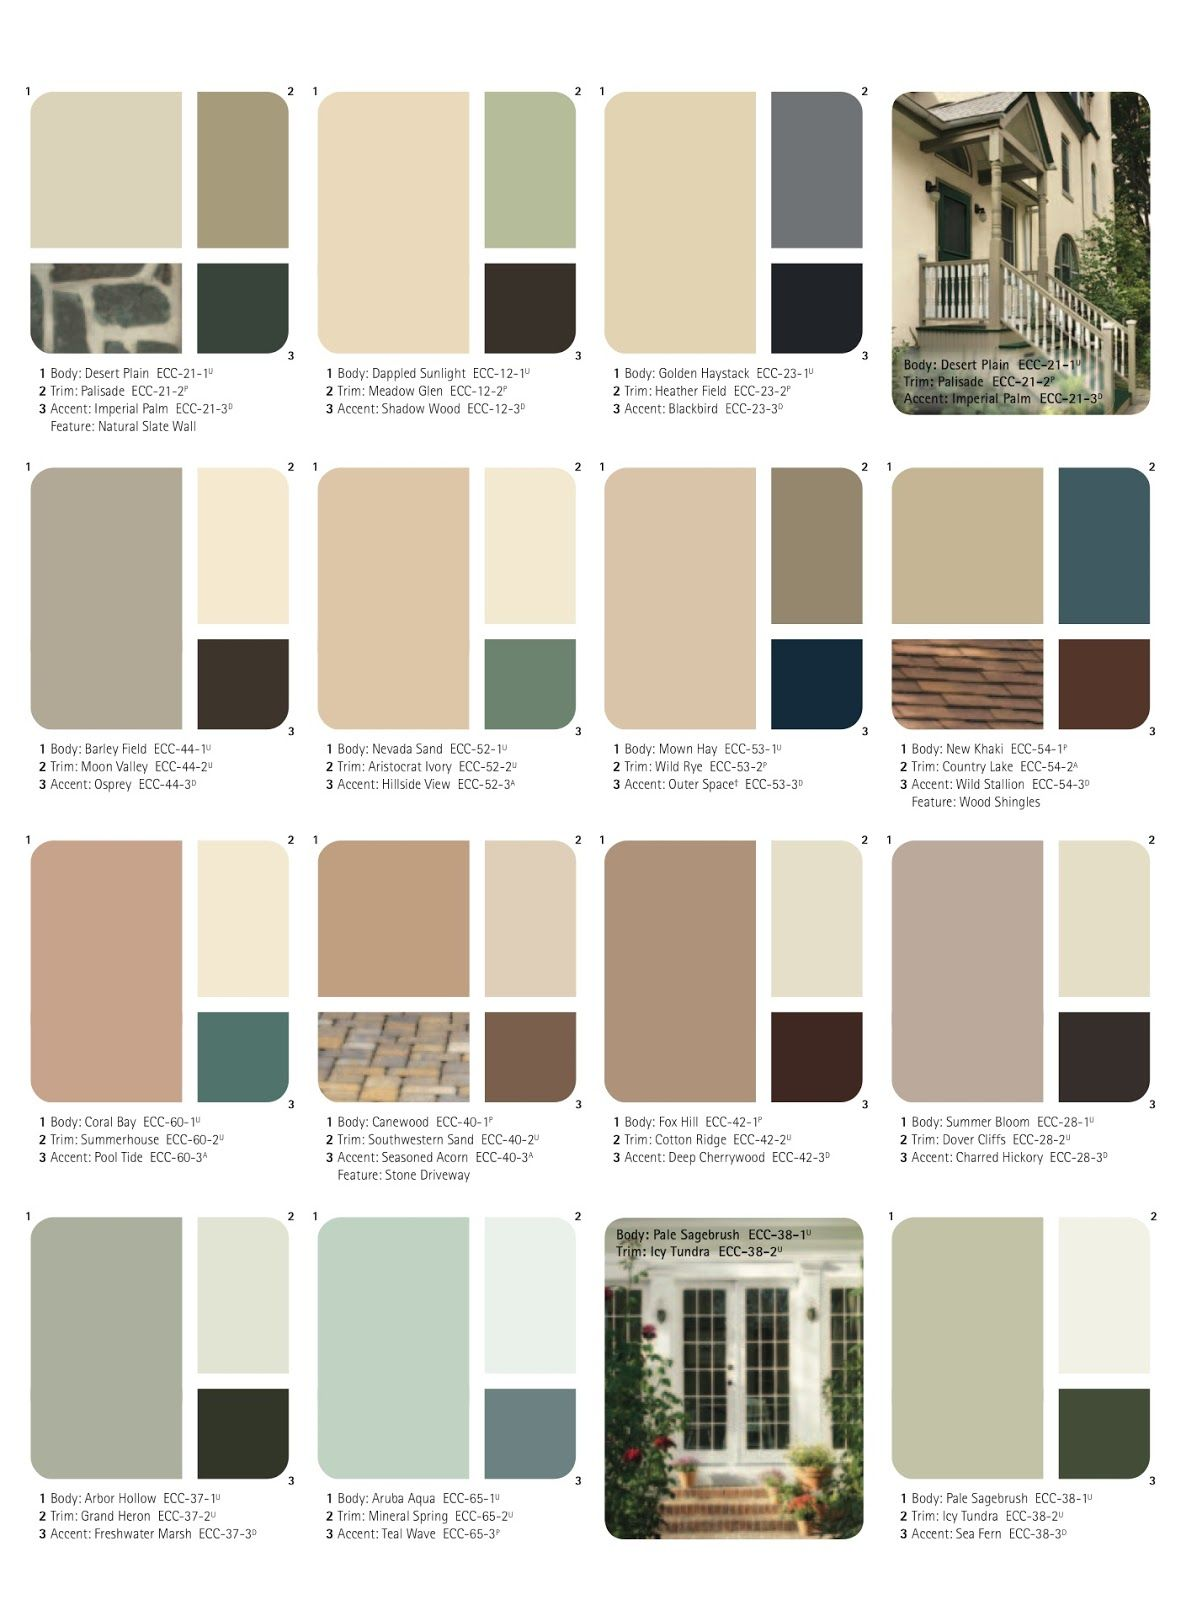 2014 Exterior Shutter And Door Paint Schemes Record The Colors Here For My Future Reference